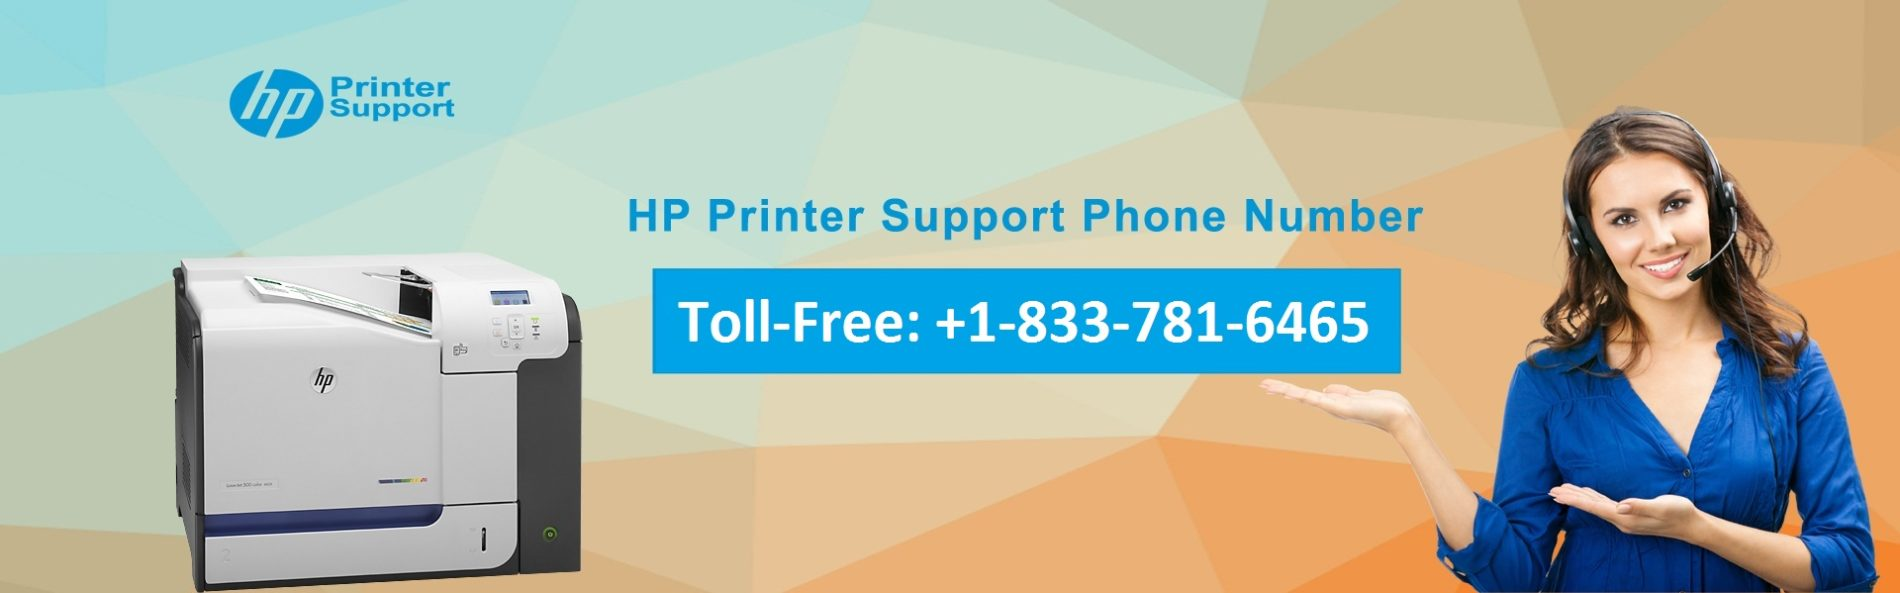 HP Printer Customer Support, HP Printer Support, Connect my HP 2630 printer to WiFi